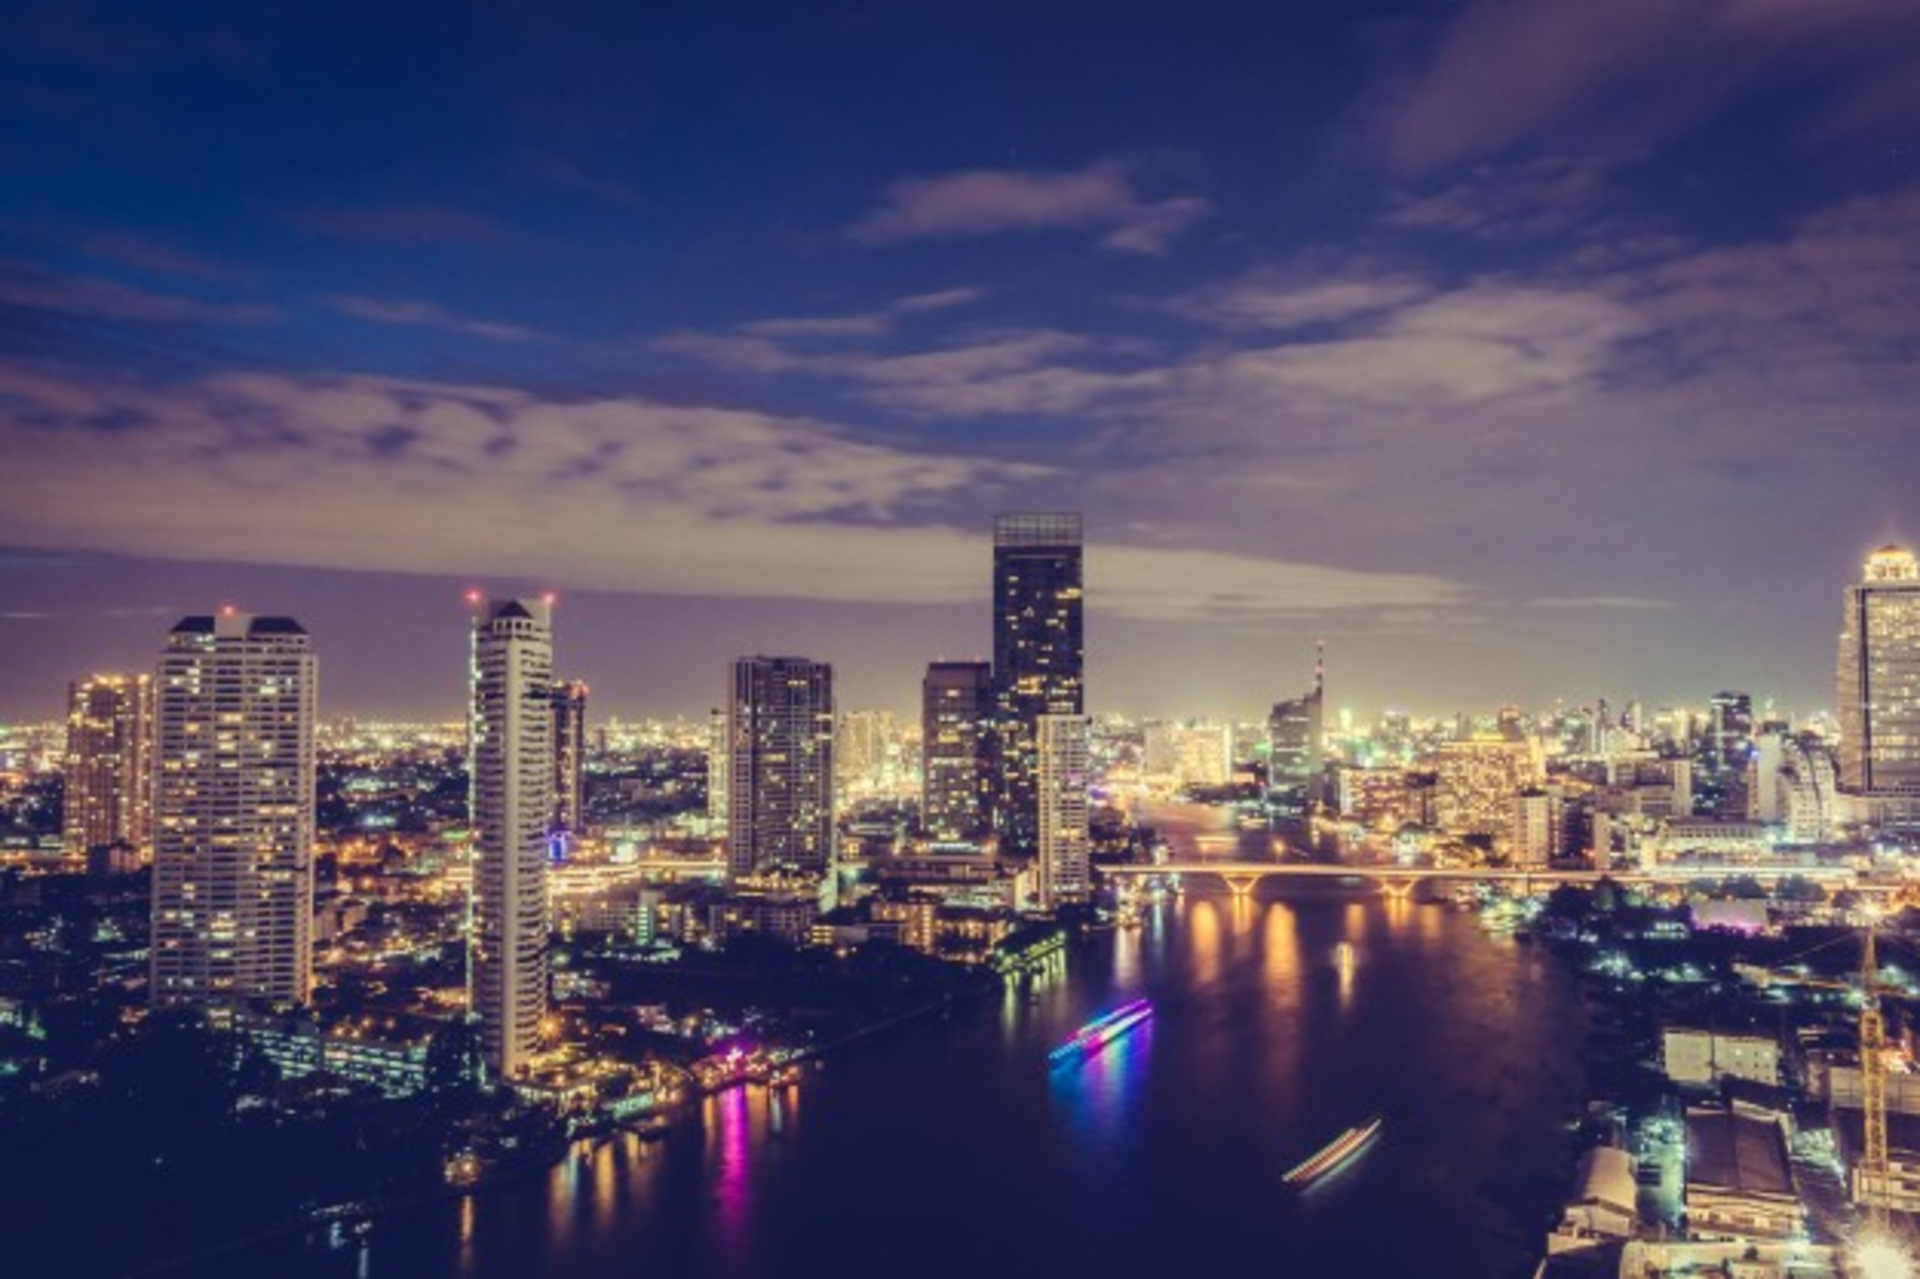 The Beautitude - bangkok-city-at-night_1203-2846